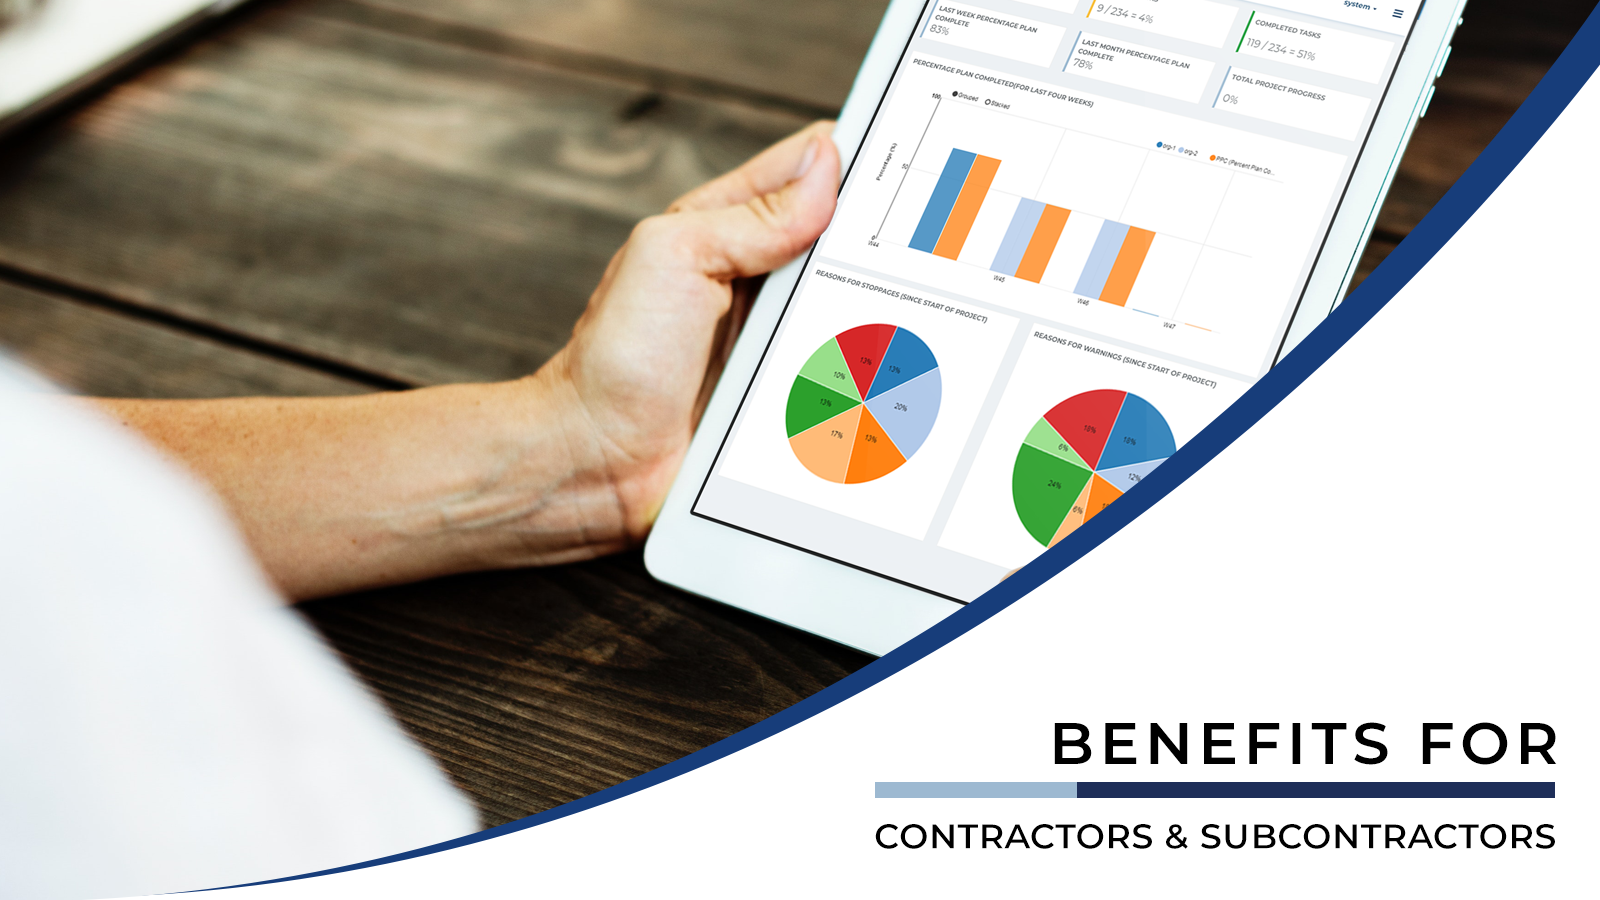 Benefits to contractors and subcontractors